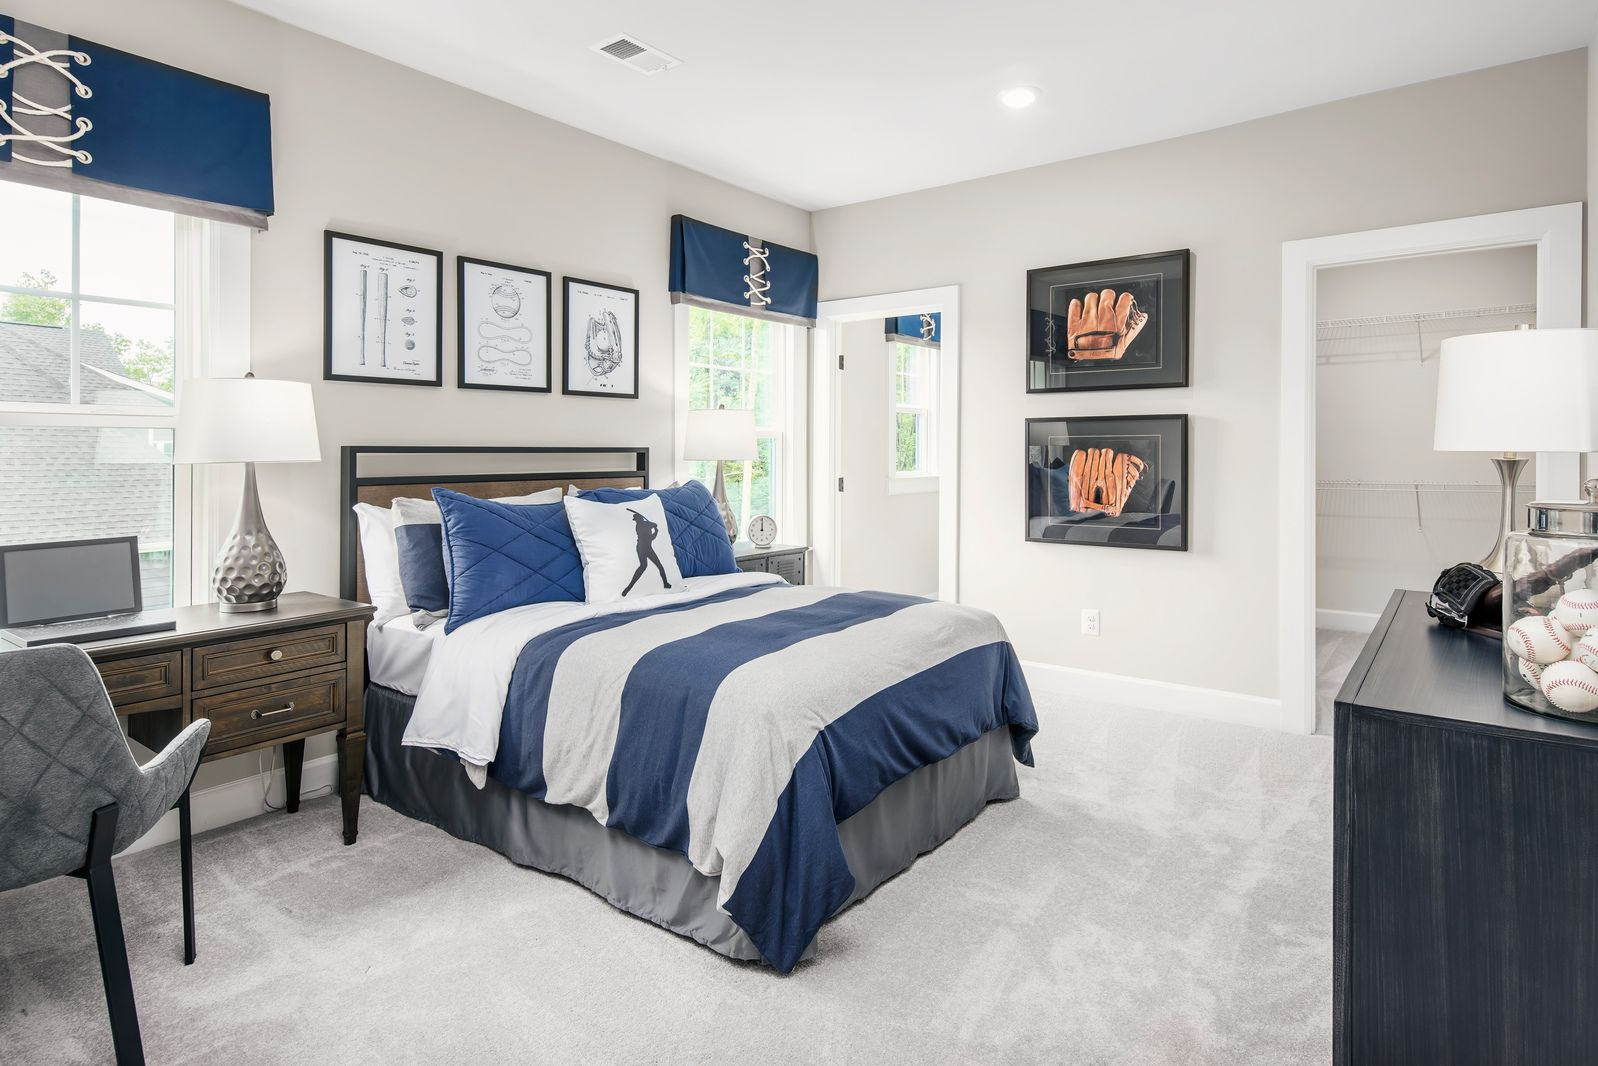 Bedroom featured in the Stratford Hall By NVHomes in Baltimore, MD